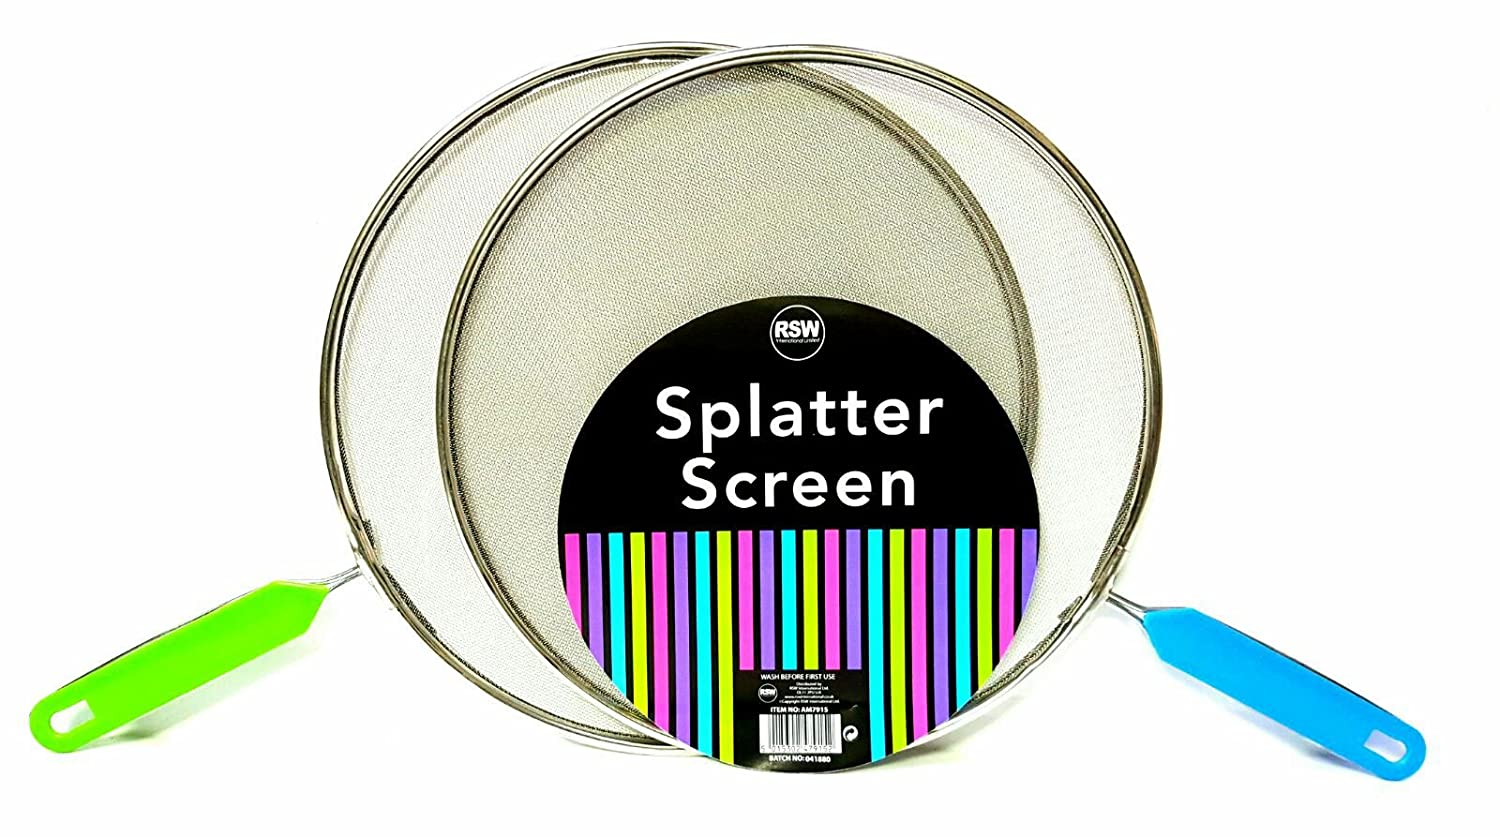 DPNY 2 x 28cm Splatter Guard Set Frying Pan Anti Splash Screen Cover Mesh Metal Wired with random Coloured Handle